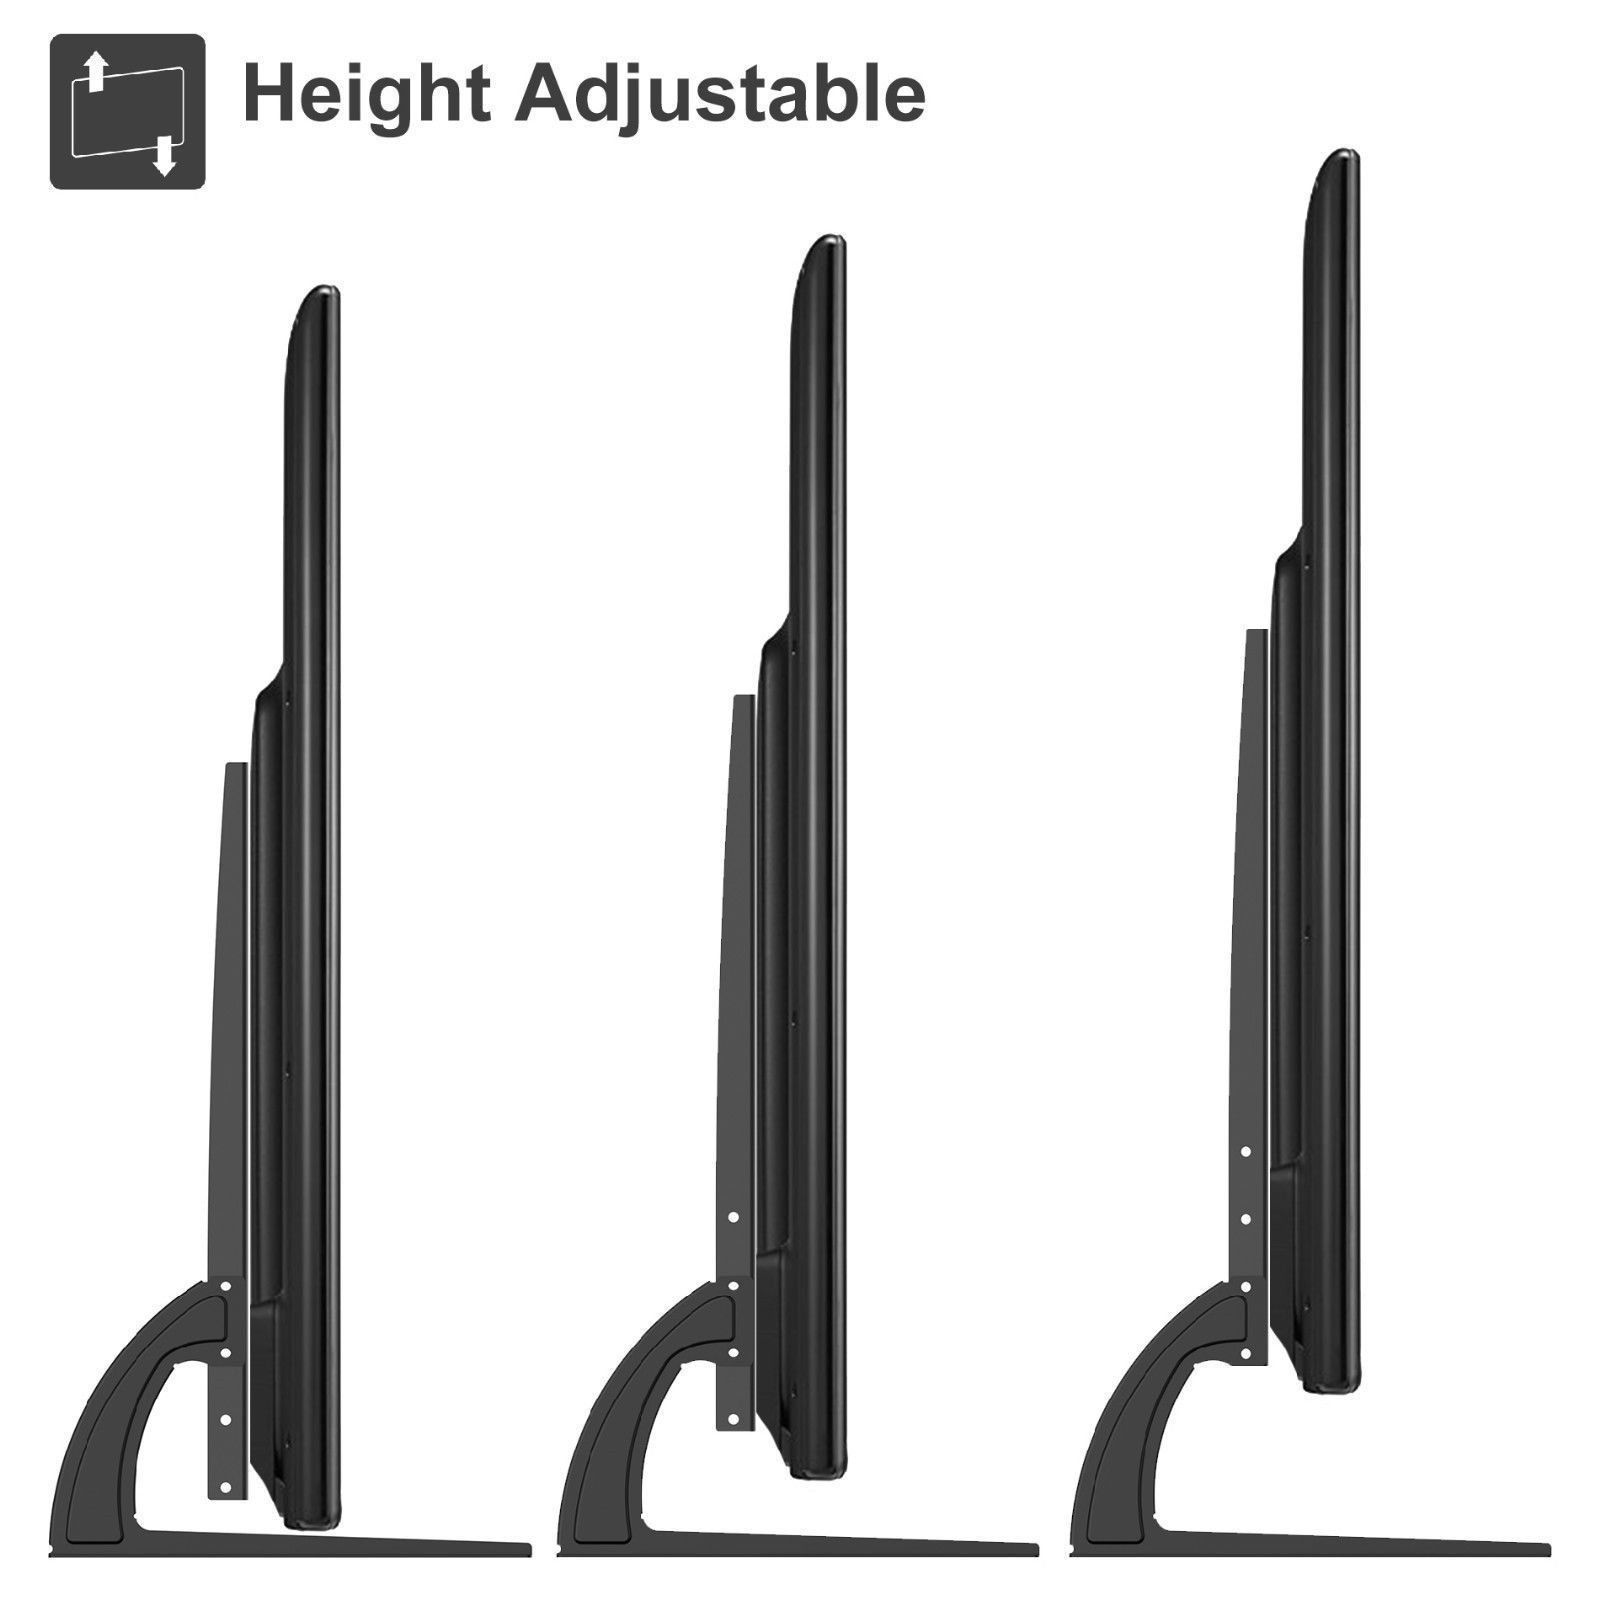 Universal Table Top TV Stand Legs for Vizio M65-D0 Height Adjustable